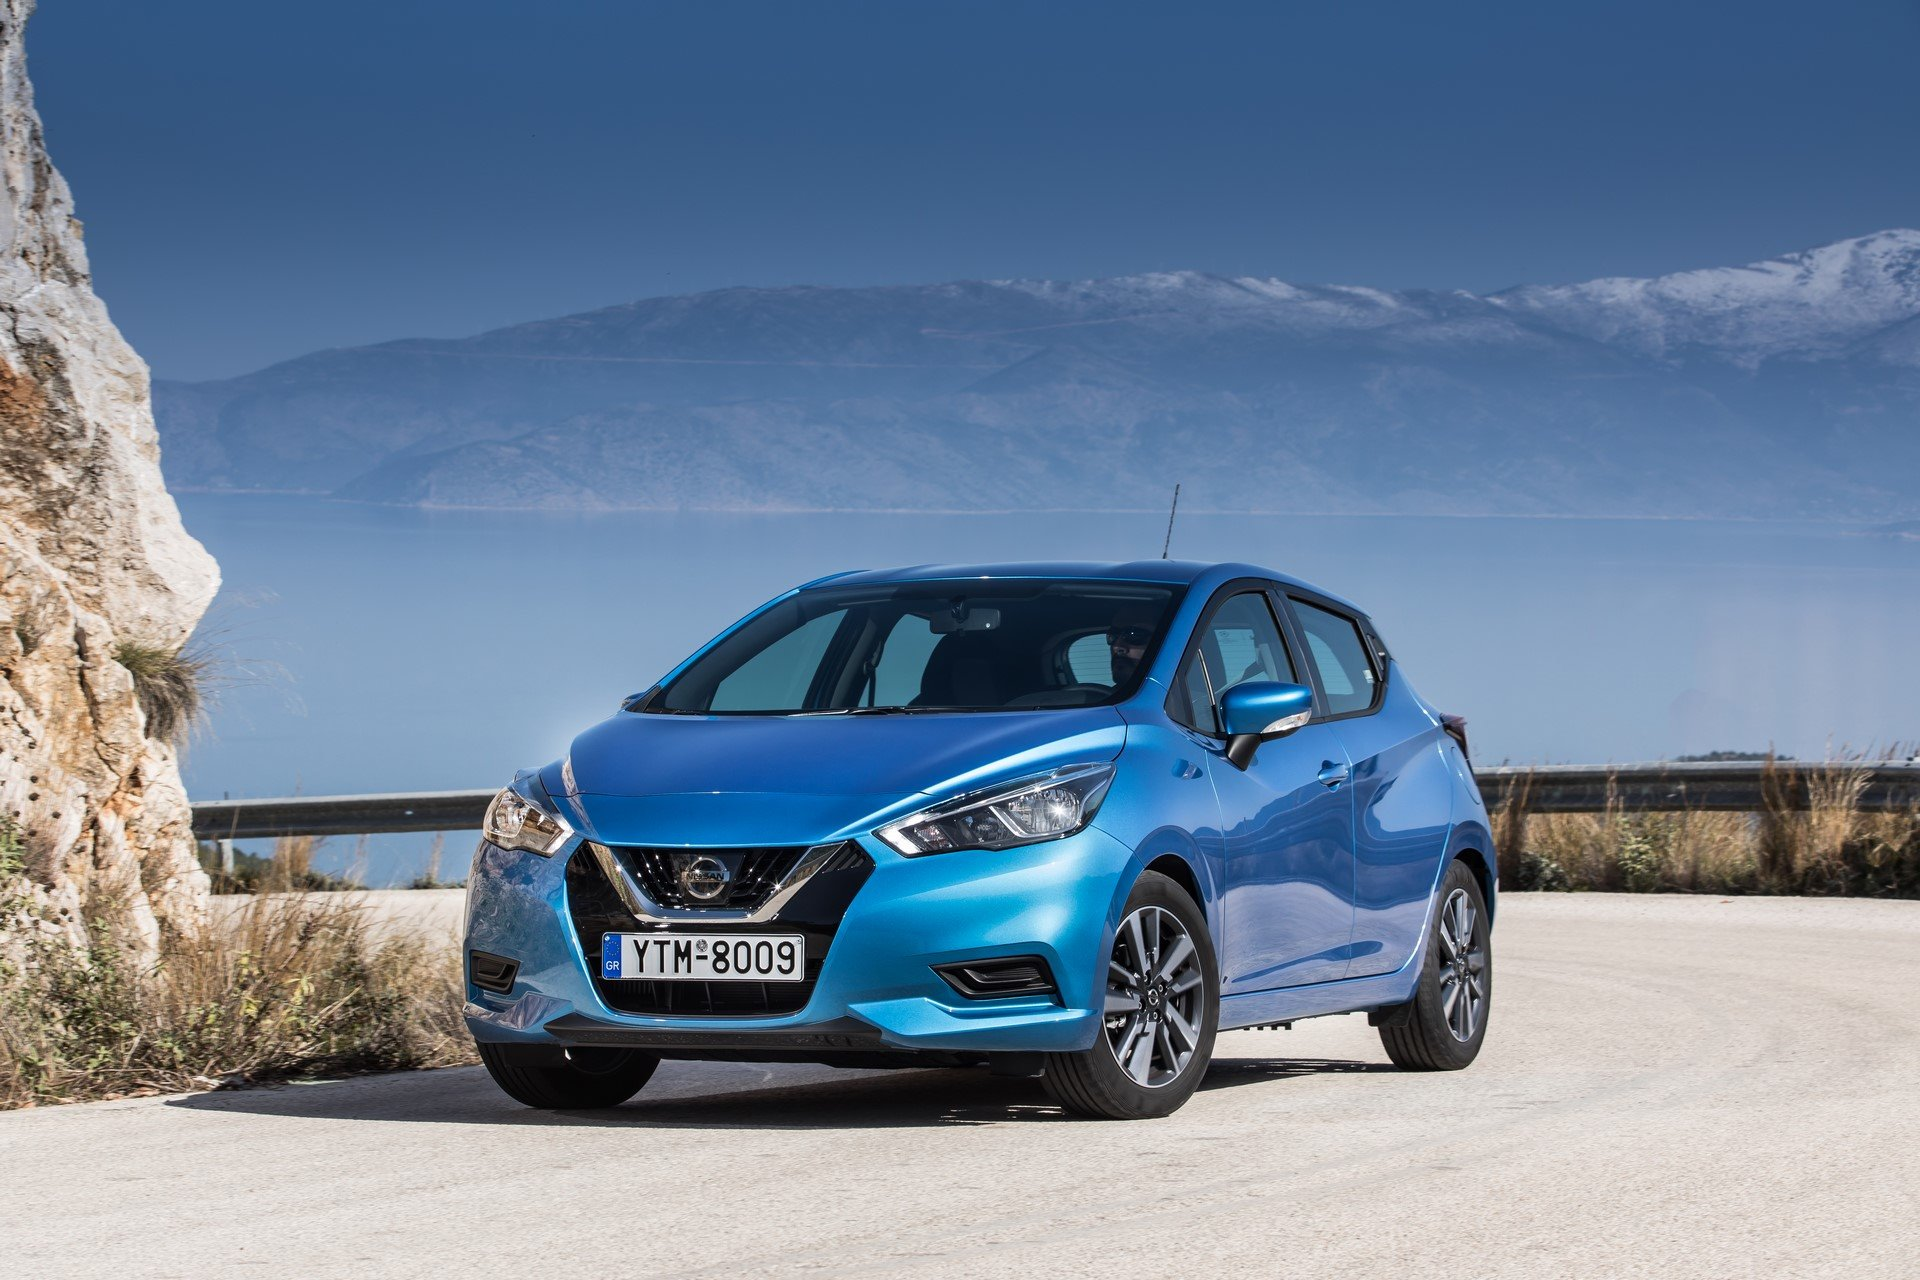 Nissan Micra 2019 Greek (38)